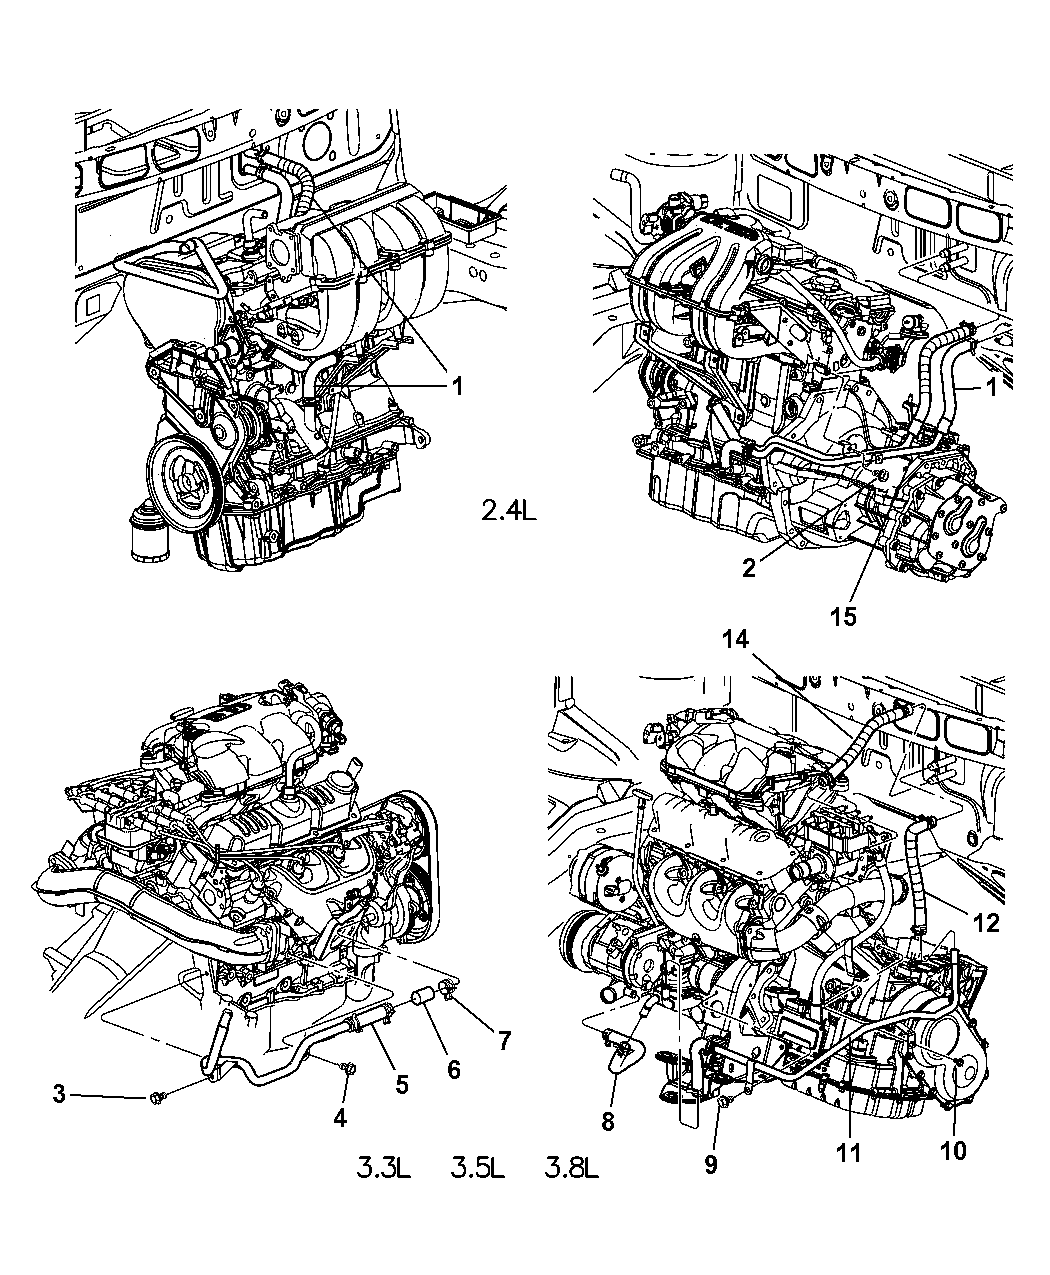 Dodge Caravan 3 3 Engine Diagram -Images Of Reading Electrical Wiring  Diagrams Wire Diagram | Begeboy Wiring Diagram SourceBegeboy Wiring Diagram Source